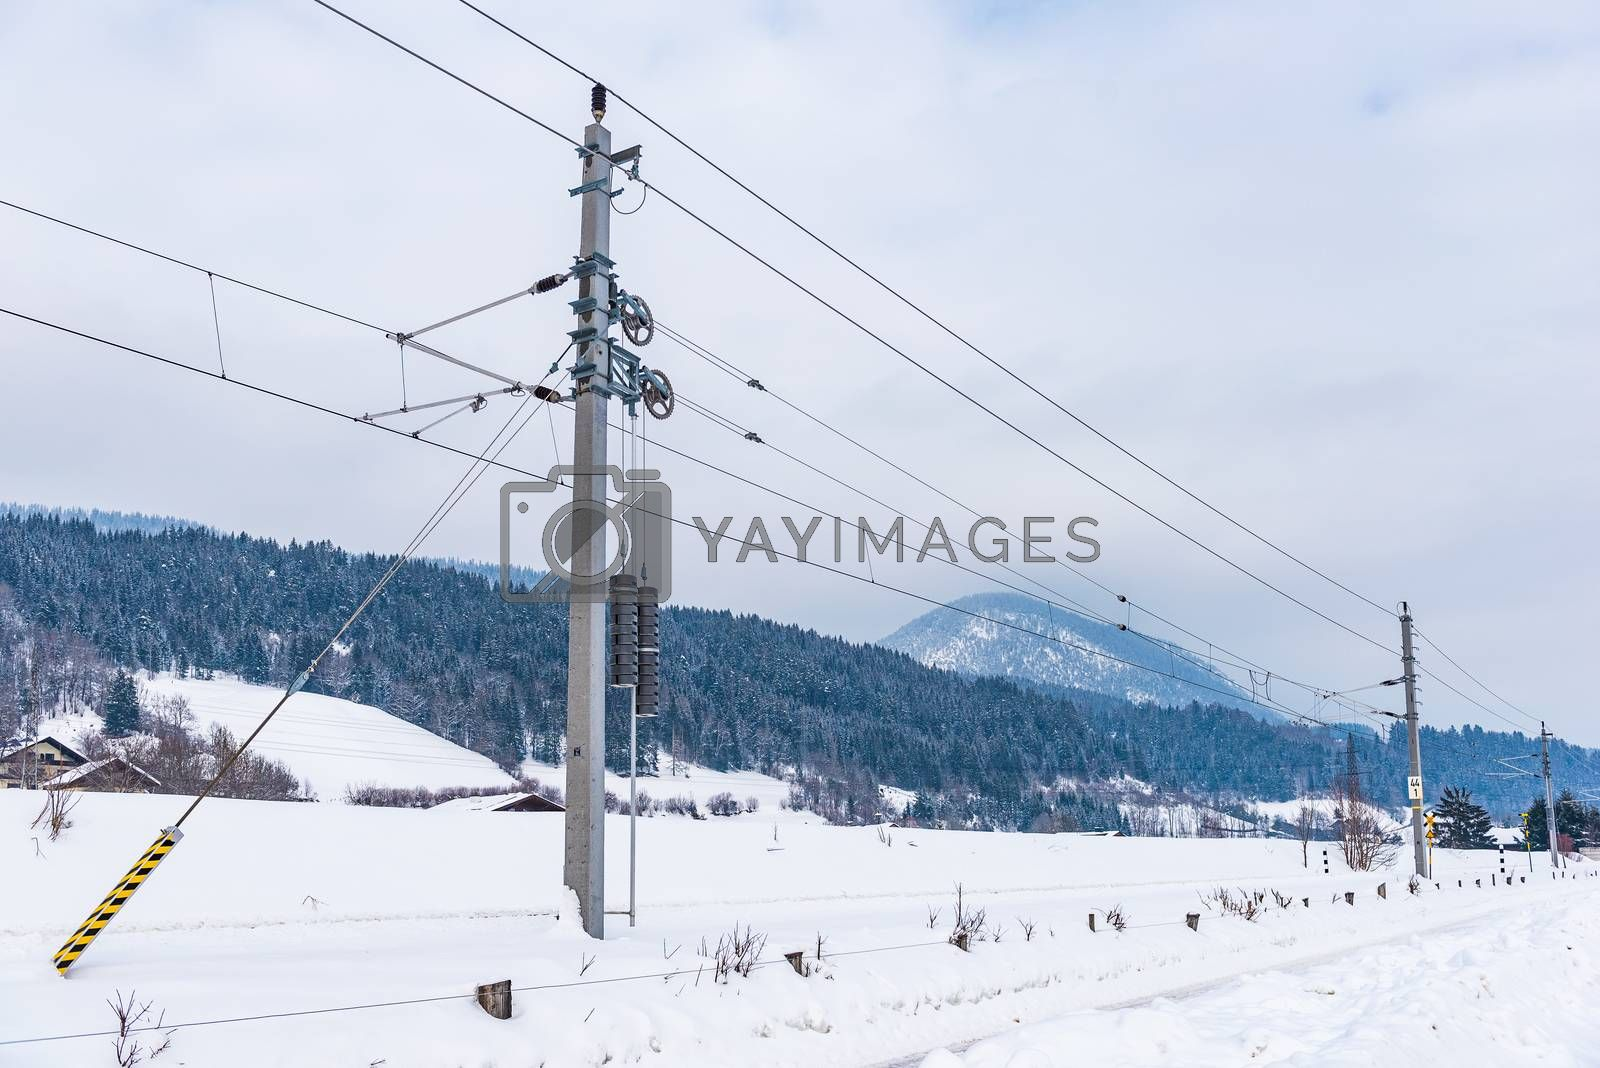 Railway electrification system - electric power overhead line network, pylon against cloudy, blue sky and mountains in winter.